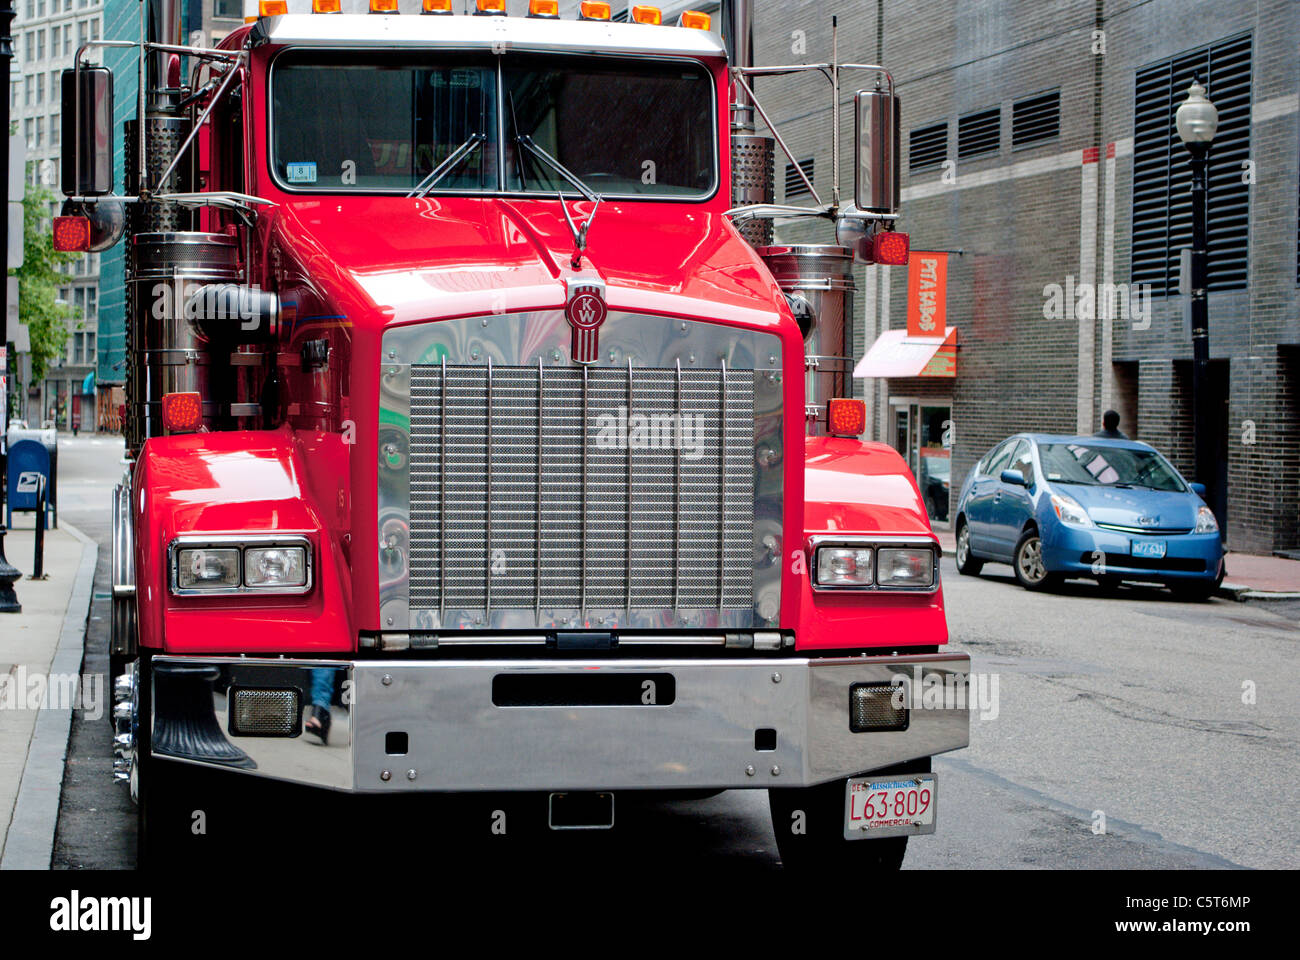 Big red truck on the city street